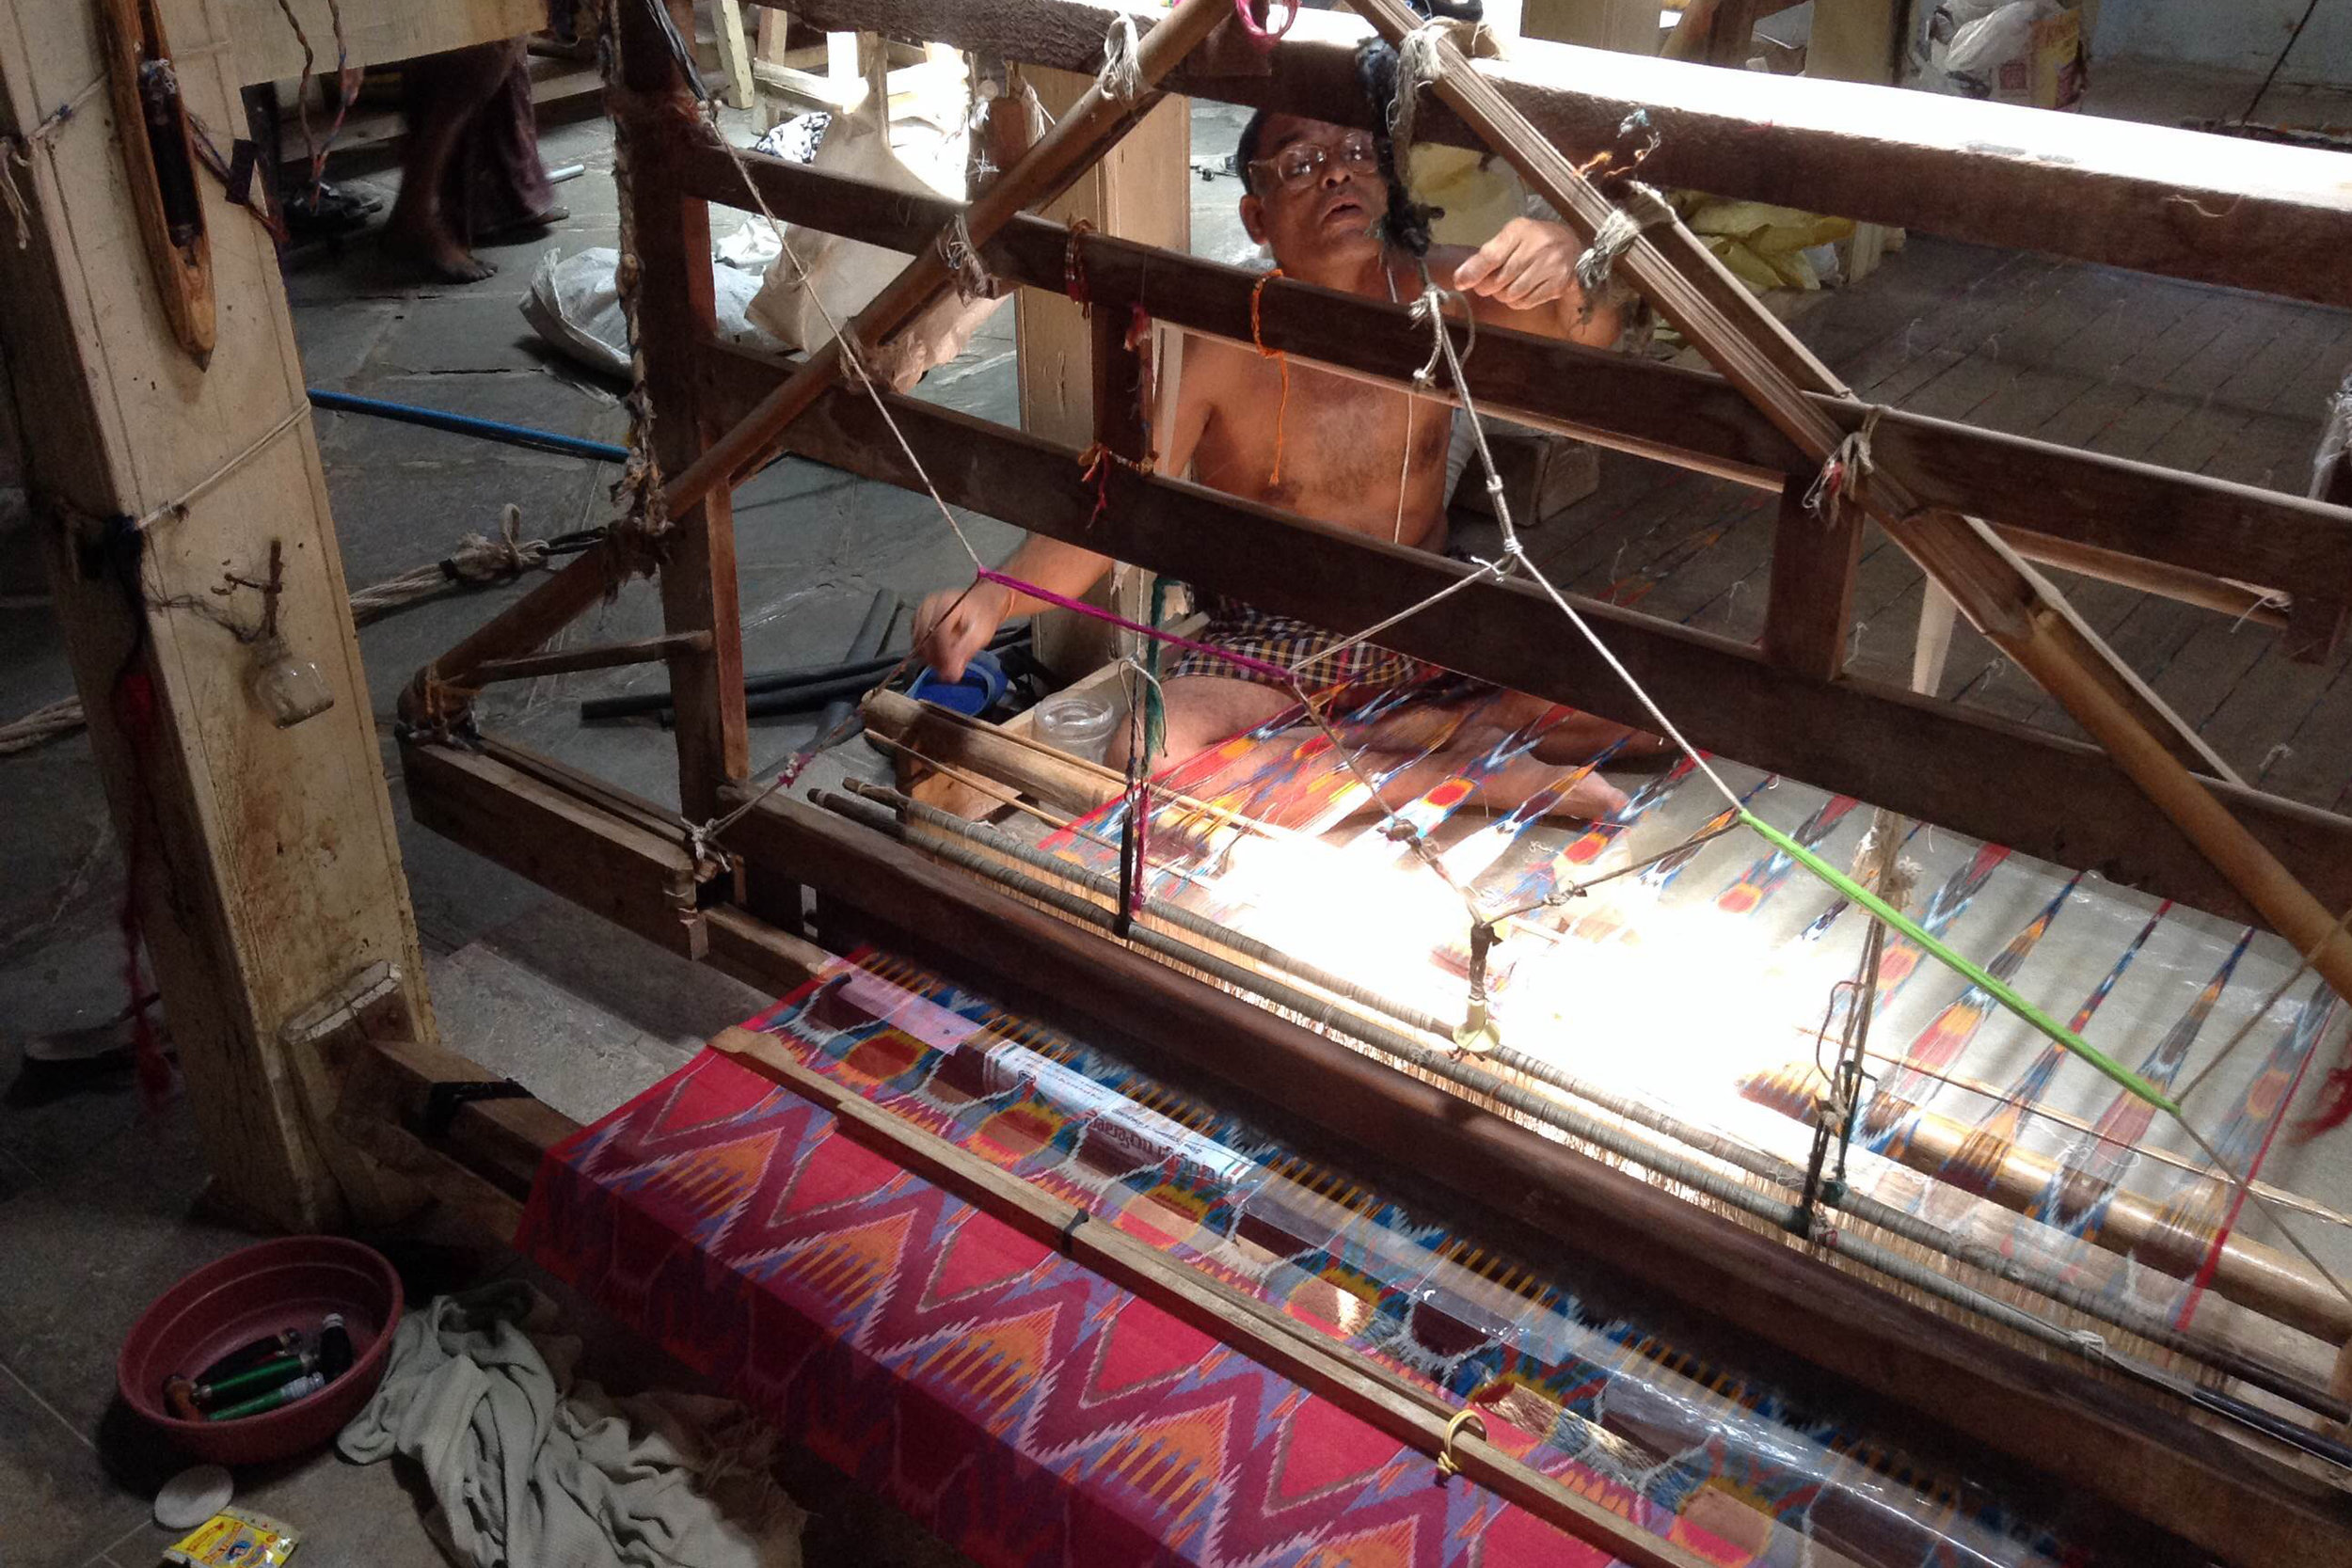 Woven Artisan Cotton - We use 100% yarn dyed, hand woven,internationally sourced cotton that comes in numerous colors and patterns for our products.Towels / Blankets / Clutches.